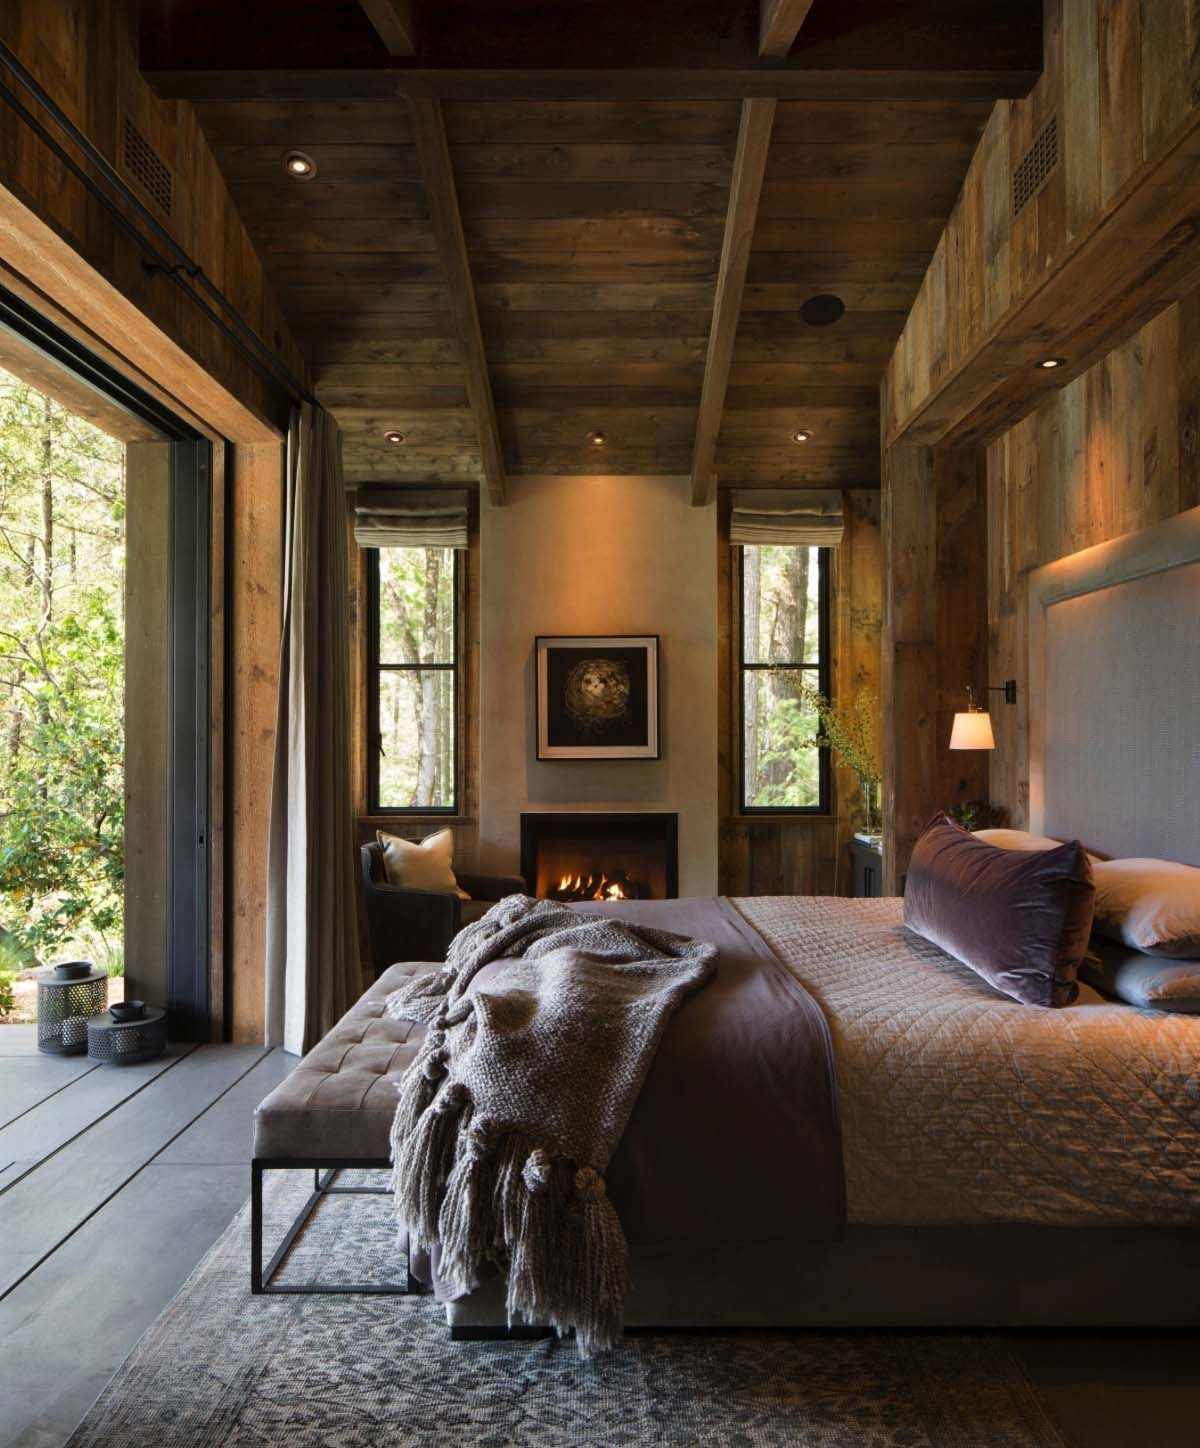 Bedroom Ideas 52 Modern Design Ideas For Your Bedroom: 40 Amazing Rustic Bedrooms Styled To Feel Like A Cozy